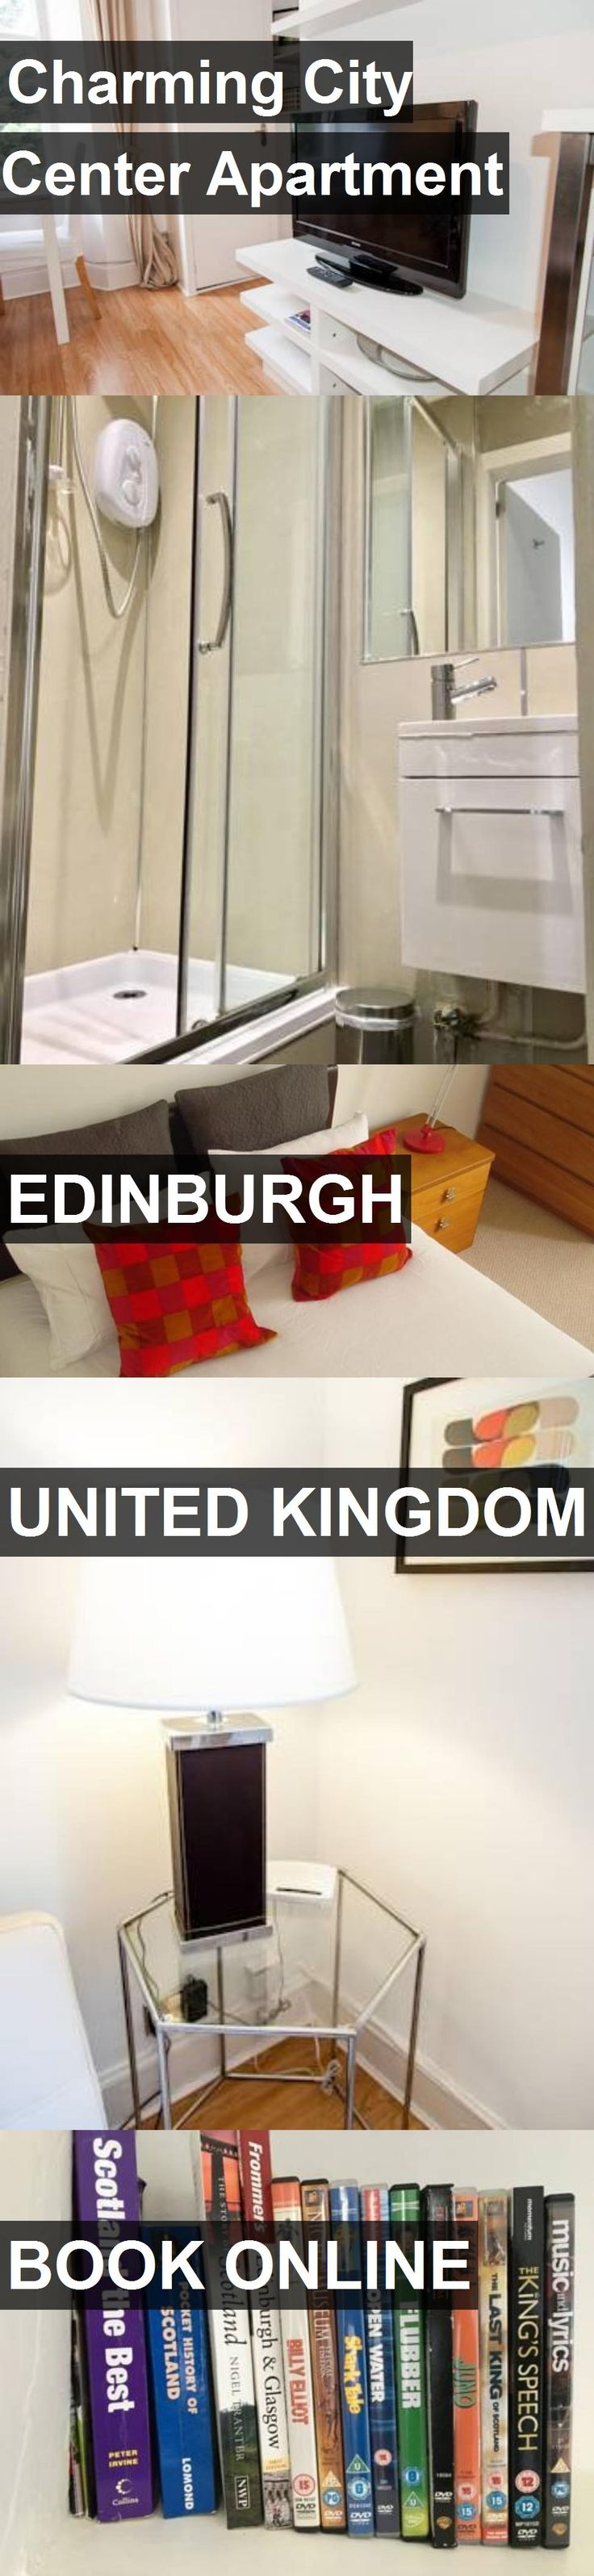 Hotel Charming City Center Apartment in Edinburgh, United Kingdom. For more information, photos, reviews and best prices please follow the link. #UnitedKingdom #Edinburgh #CharmingCityCenterApartment #hotel #travel #vacation